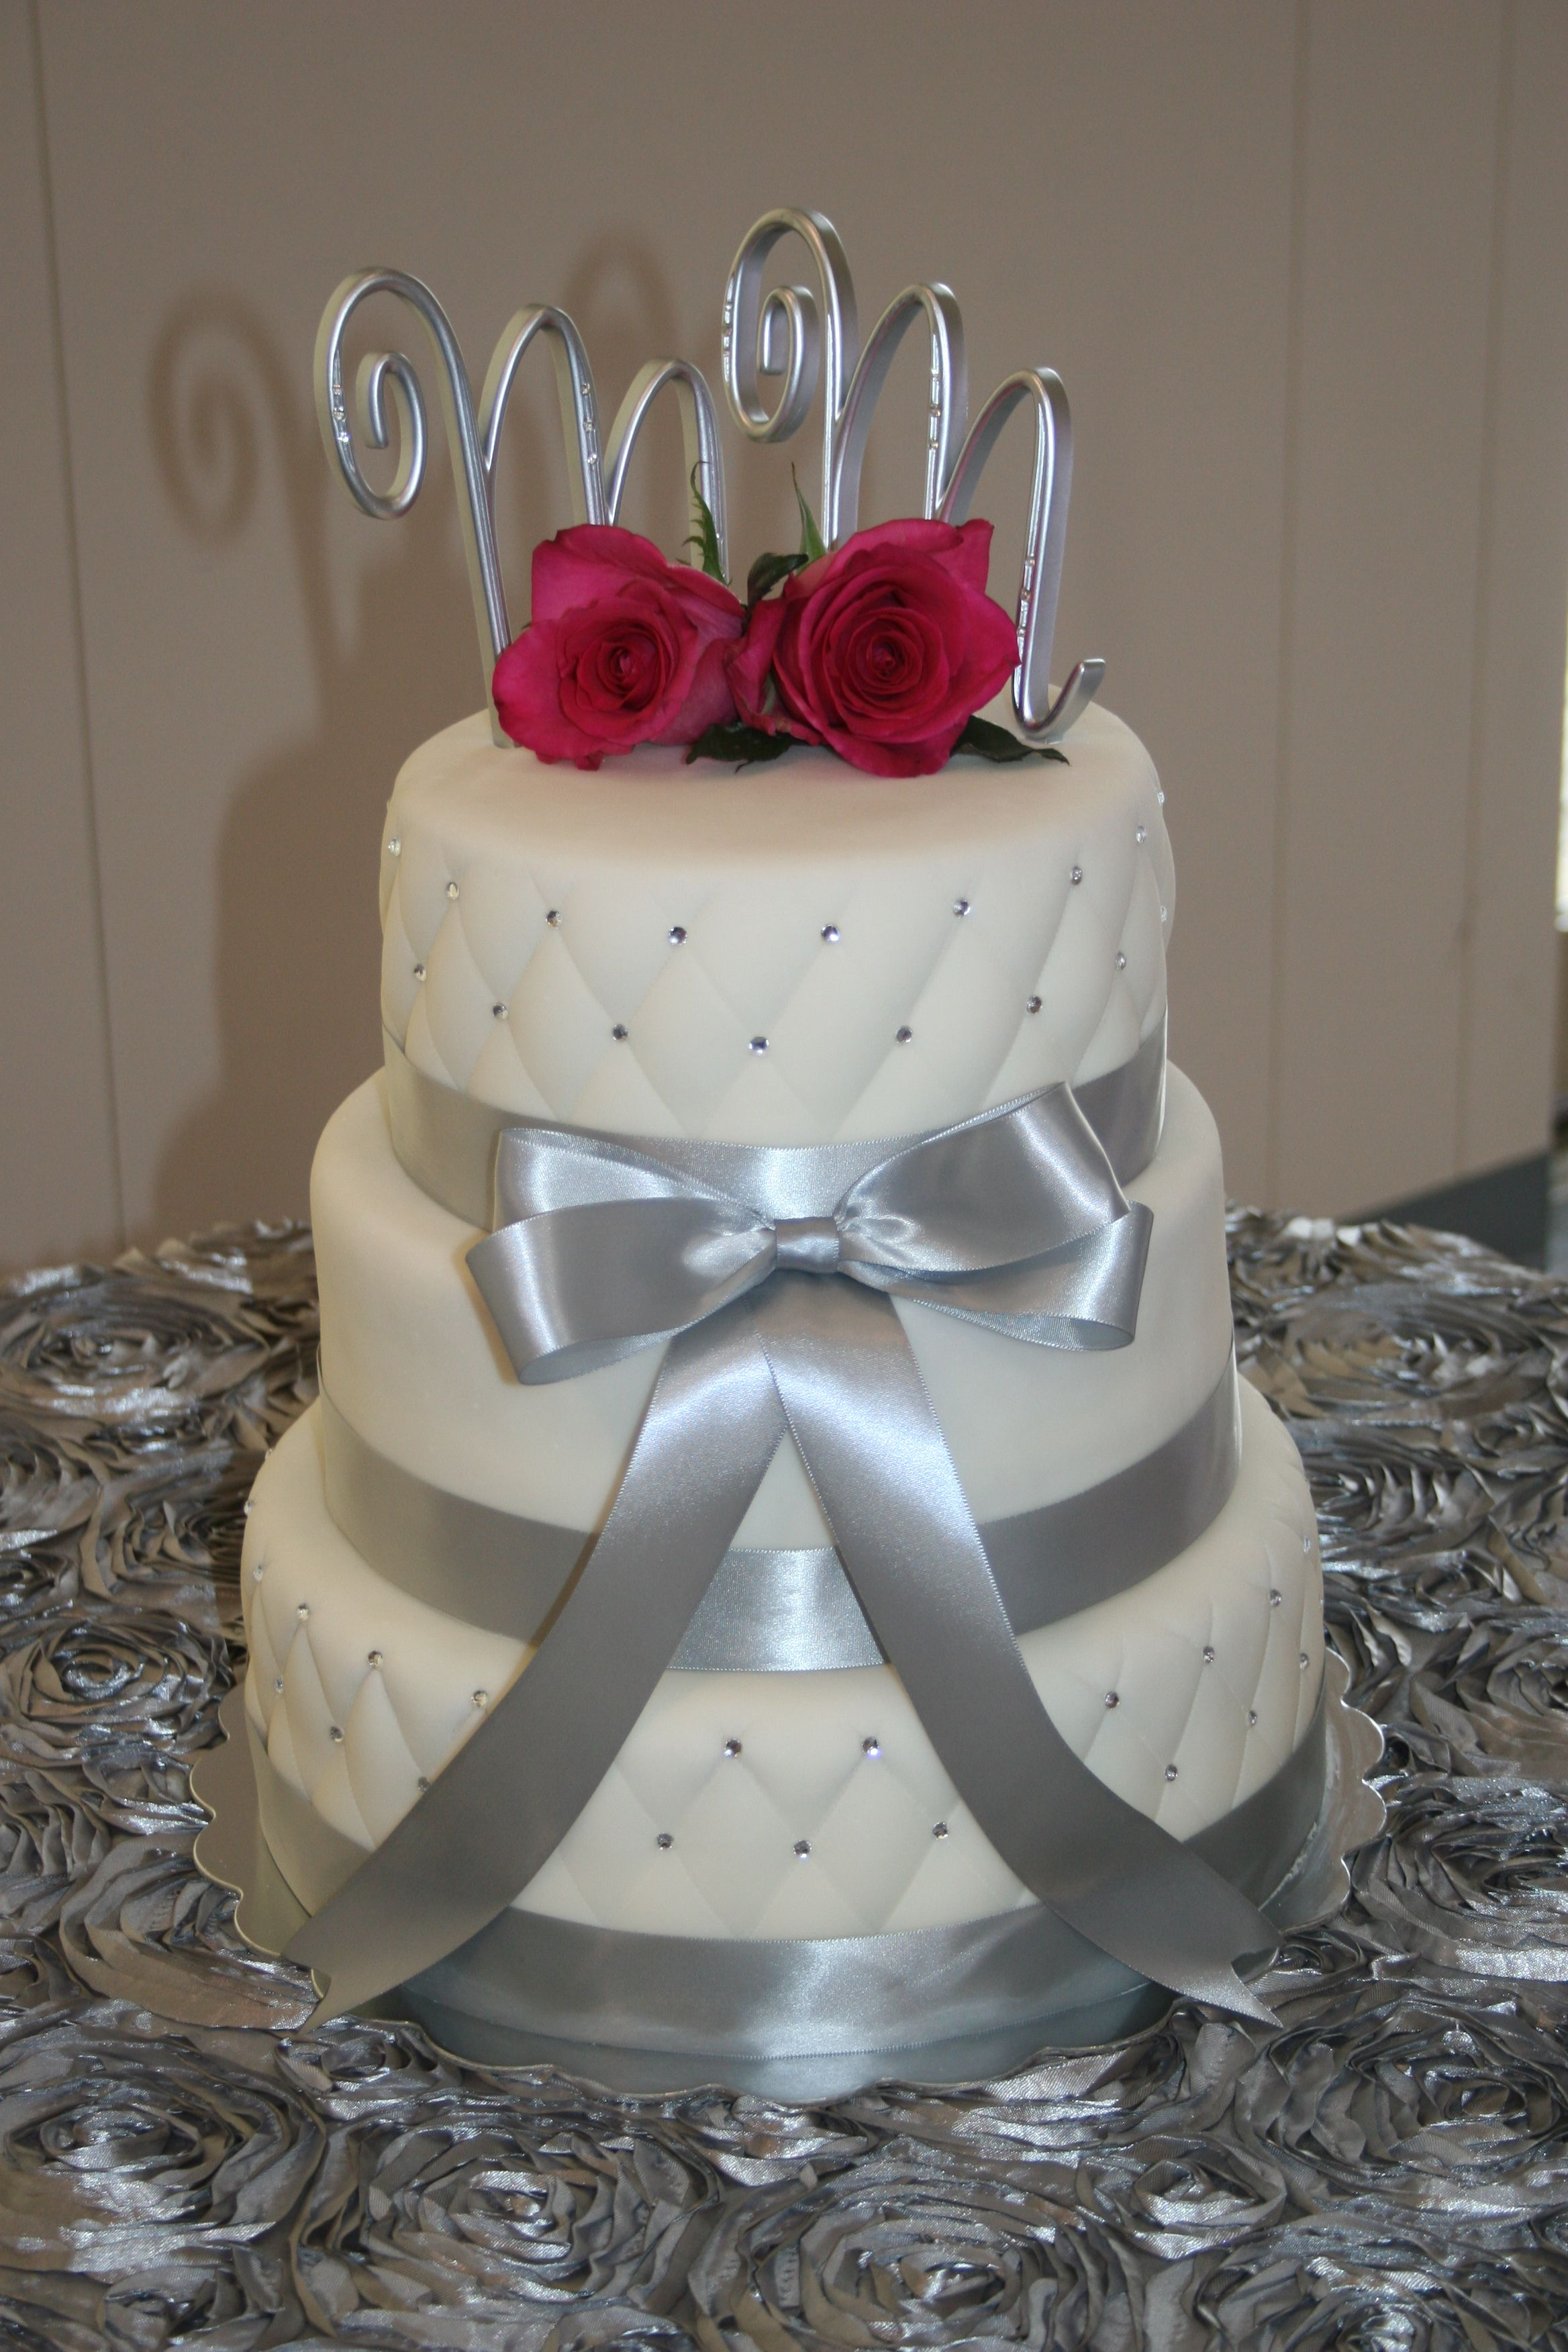 Cake ideas on pinterest pirate cakes marshmallow fondant and - Vanilla Cake With Chocolate Filling Iced With Butter Cream Then Covered With Marshmallow Fondant Detailed With Silver Ribbon Pink Roses